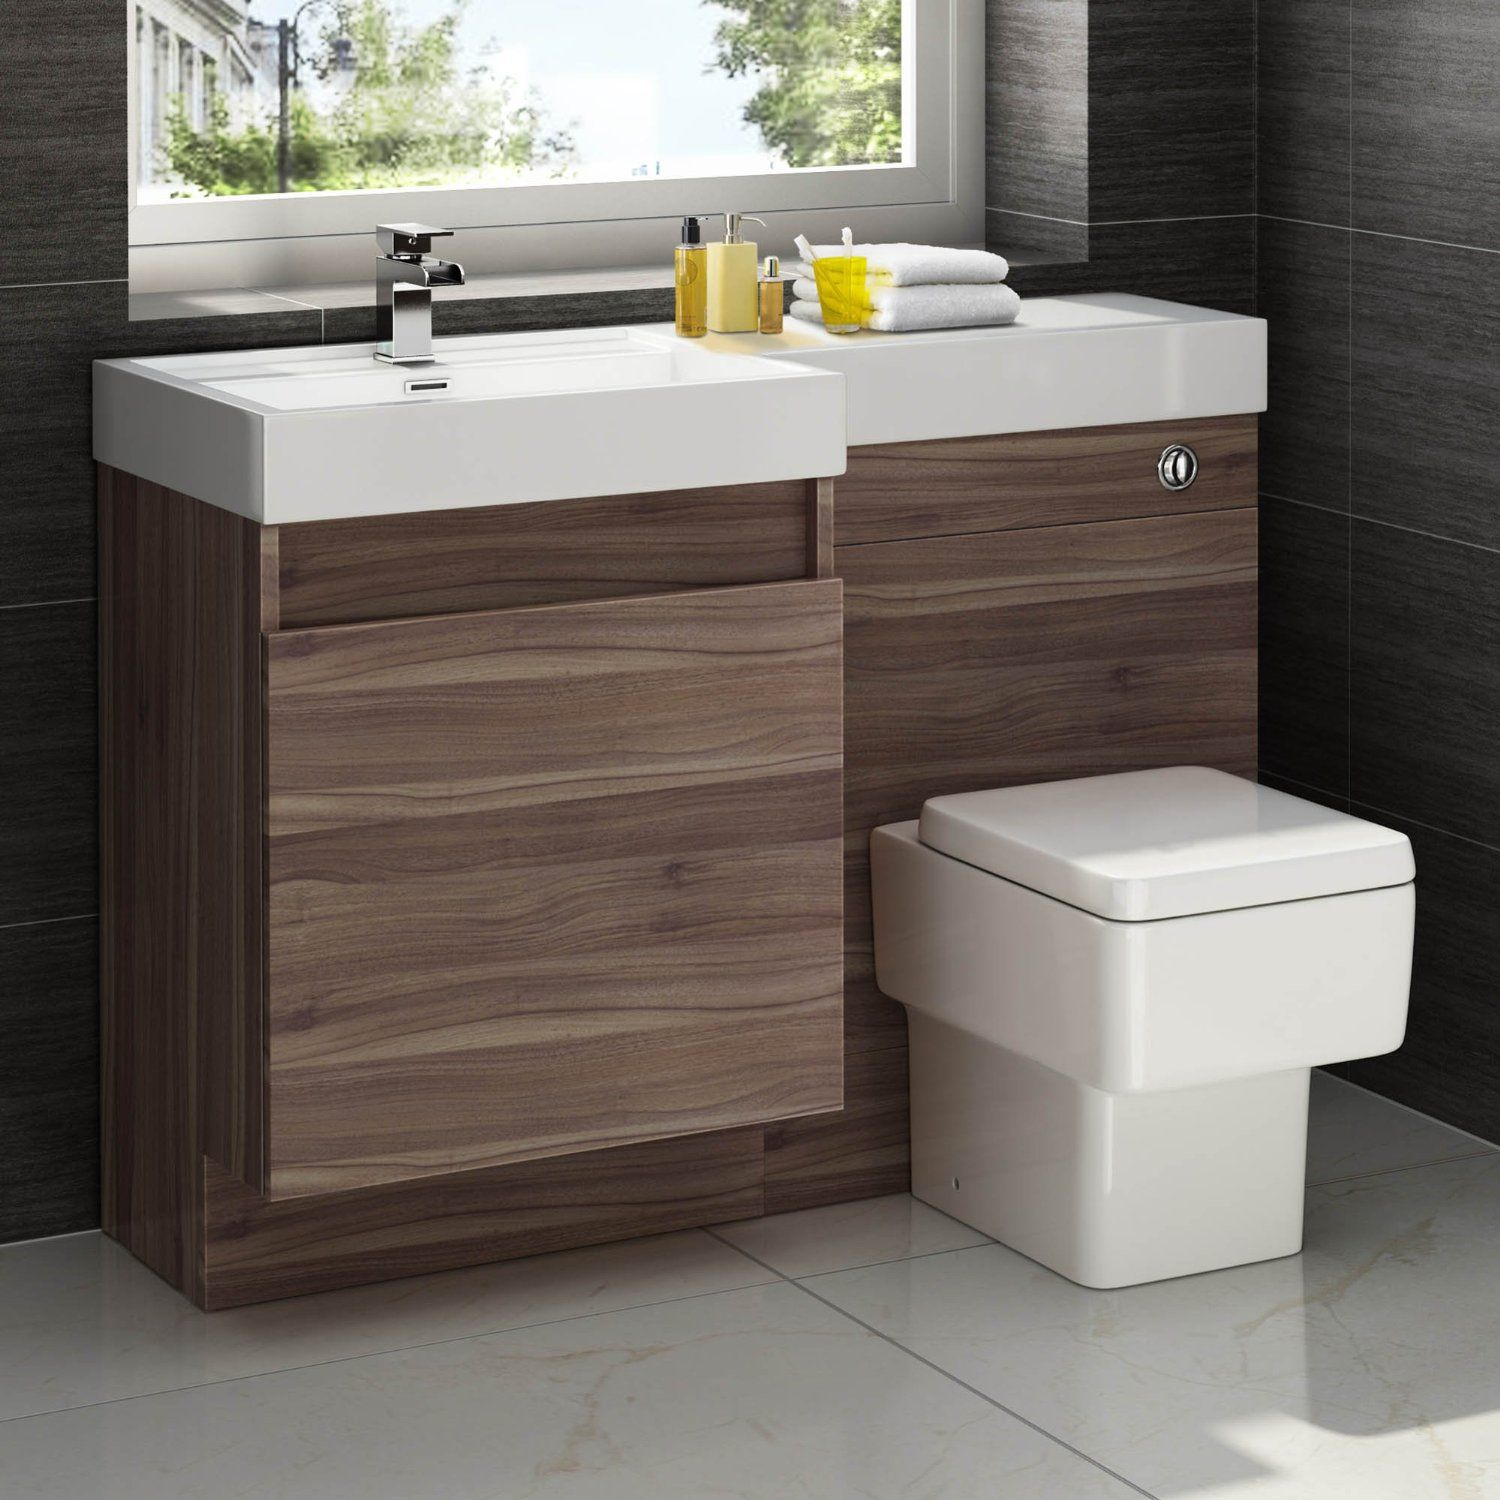 1200mm Walnut Vanity Unit Square Toilet Bathroom Sink Left